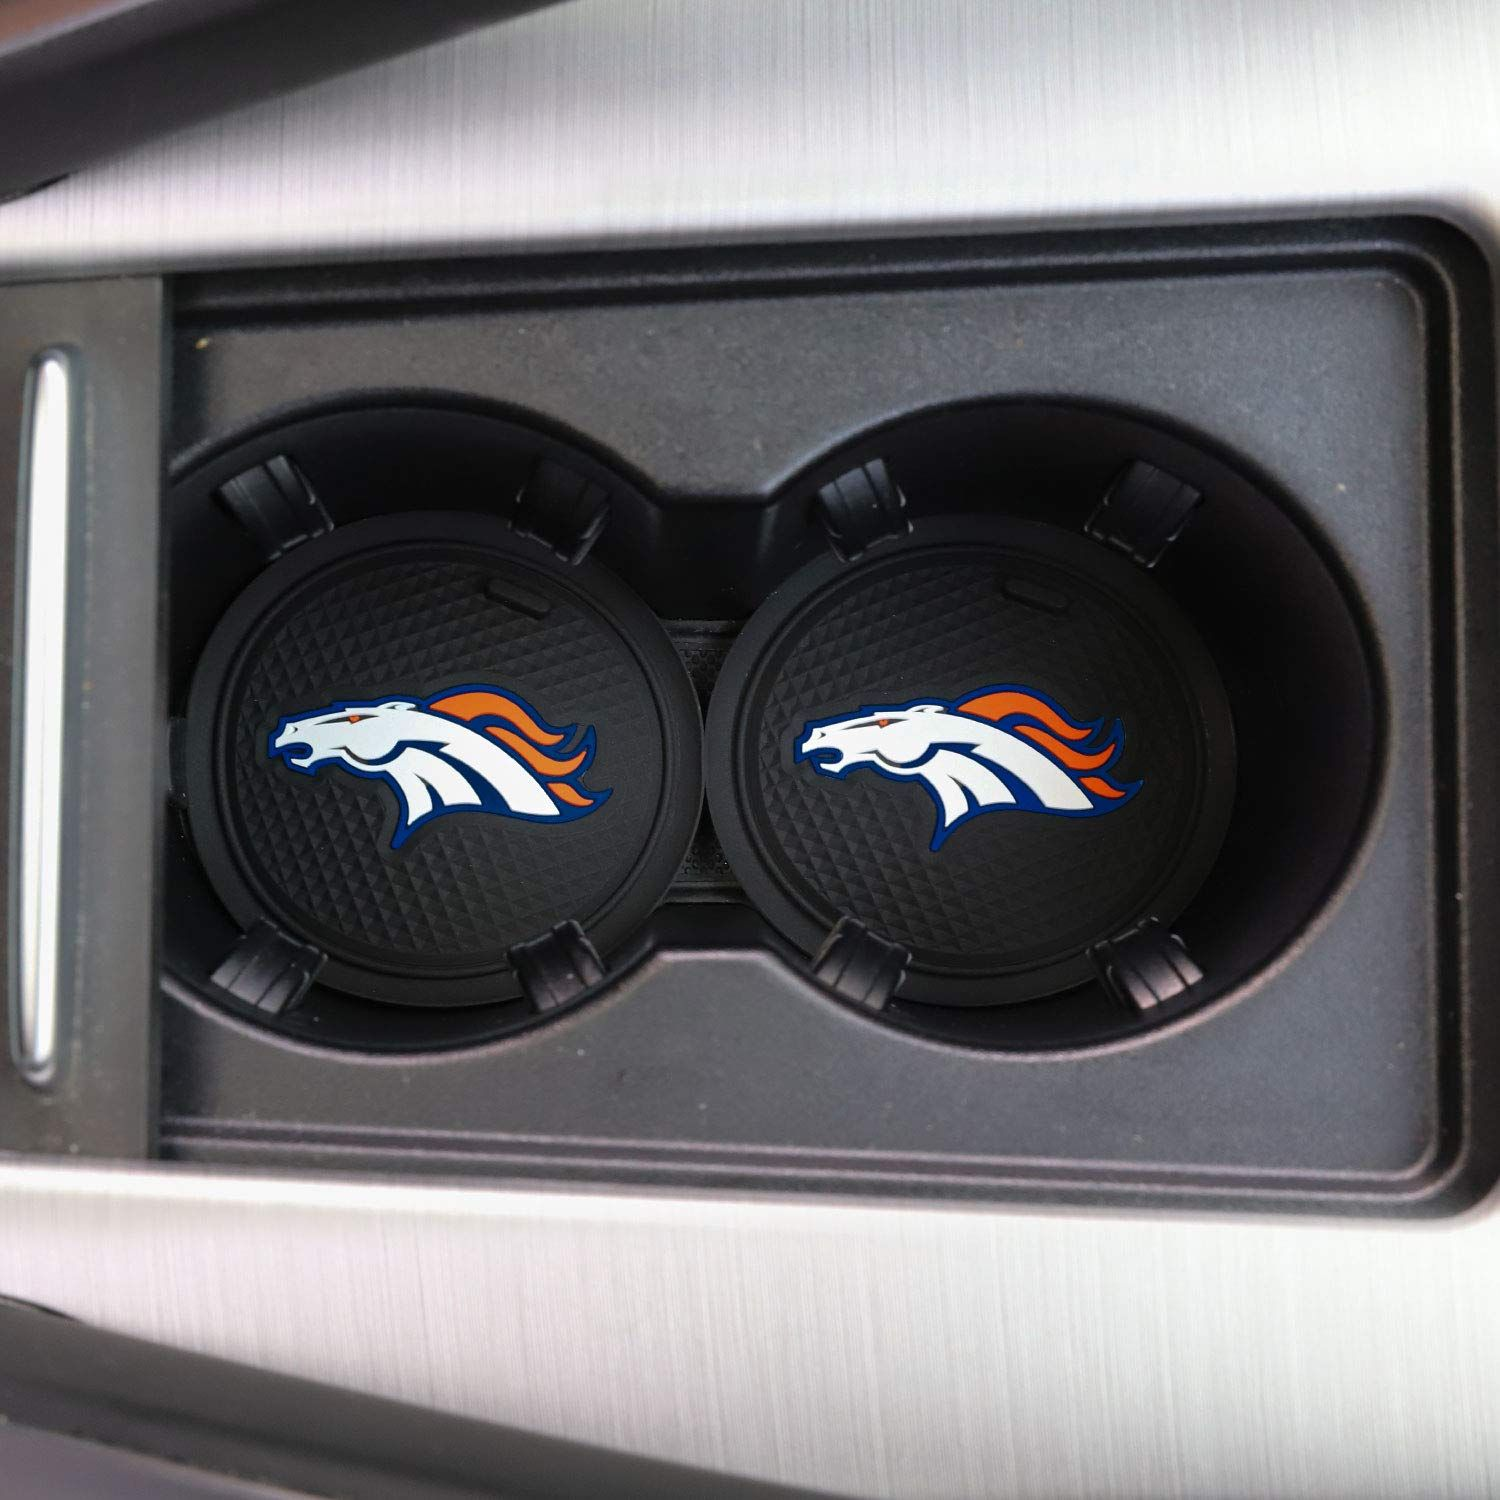 2 Pack 2 75 Inch For Denver Broncos Car Interior Accessories Anti Slip Cup Mat For All Vehicles Denver Bronco Car Interior Accessories Bronco Car Car Interior